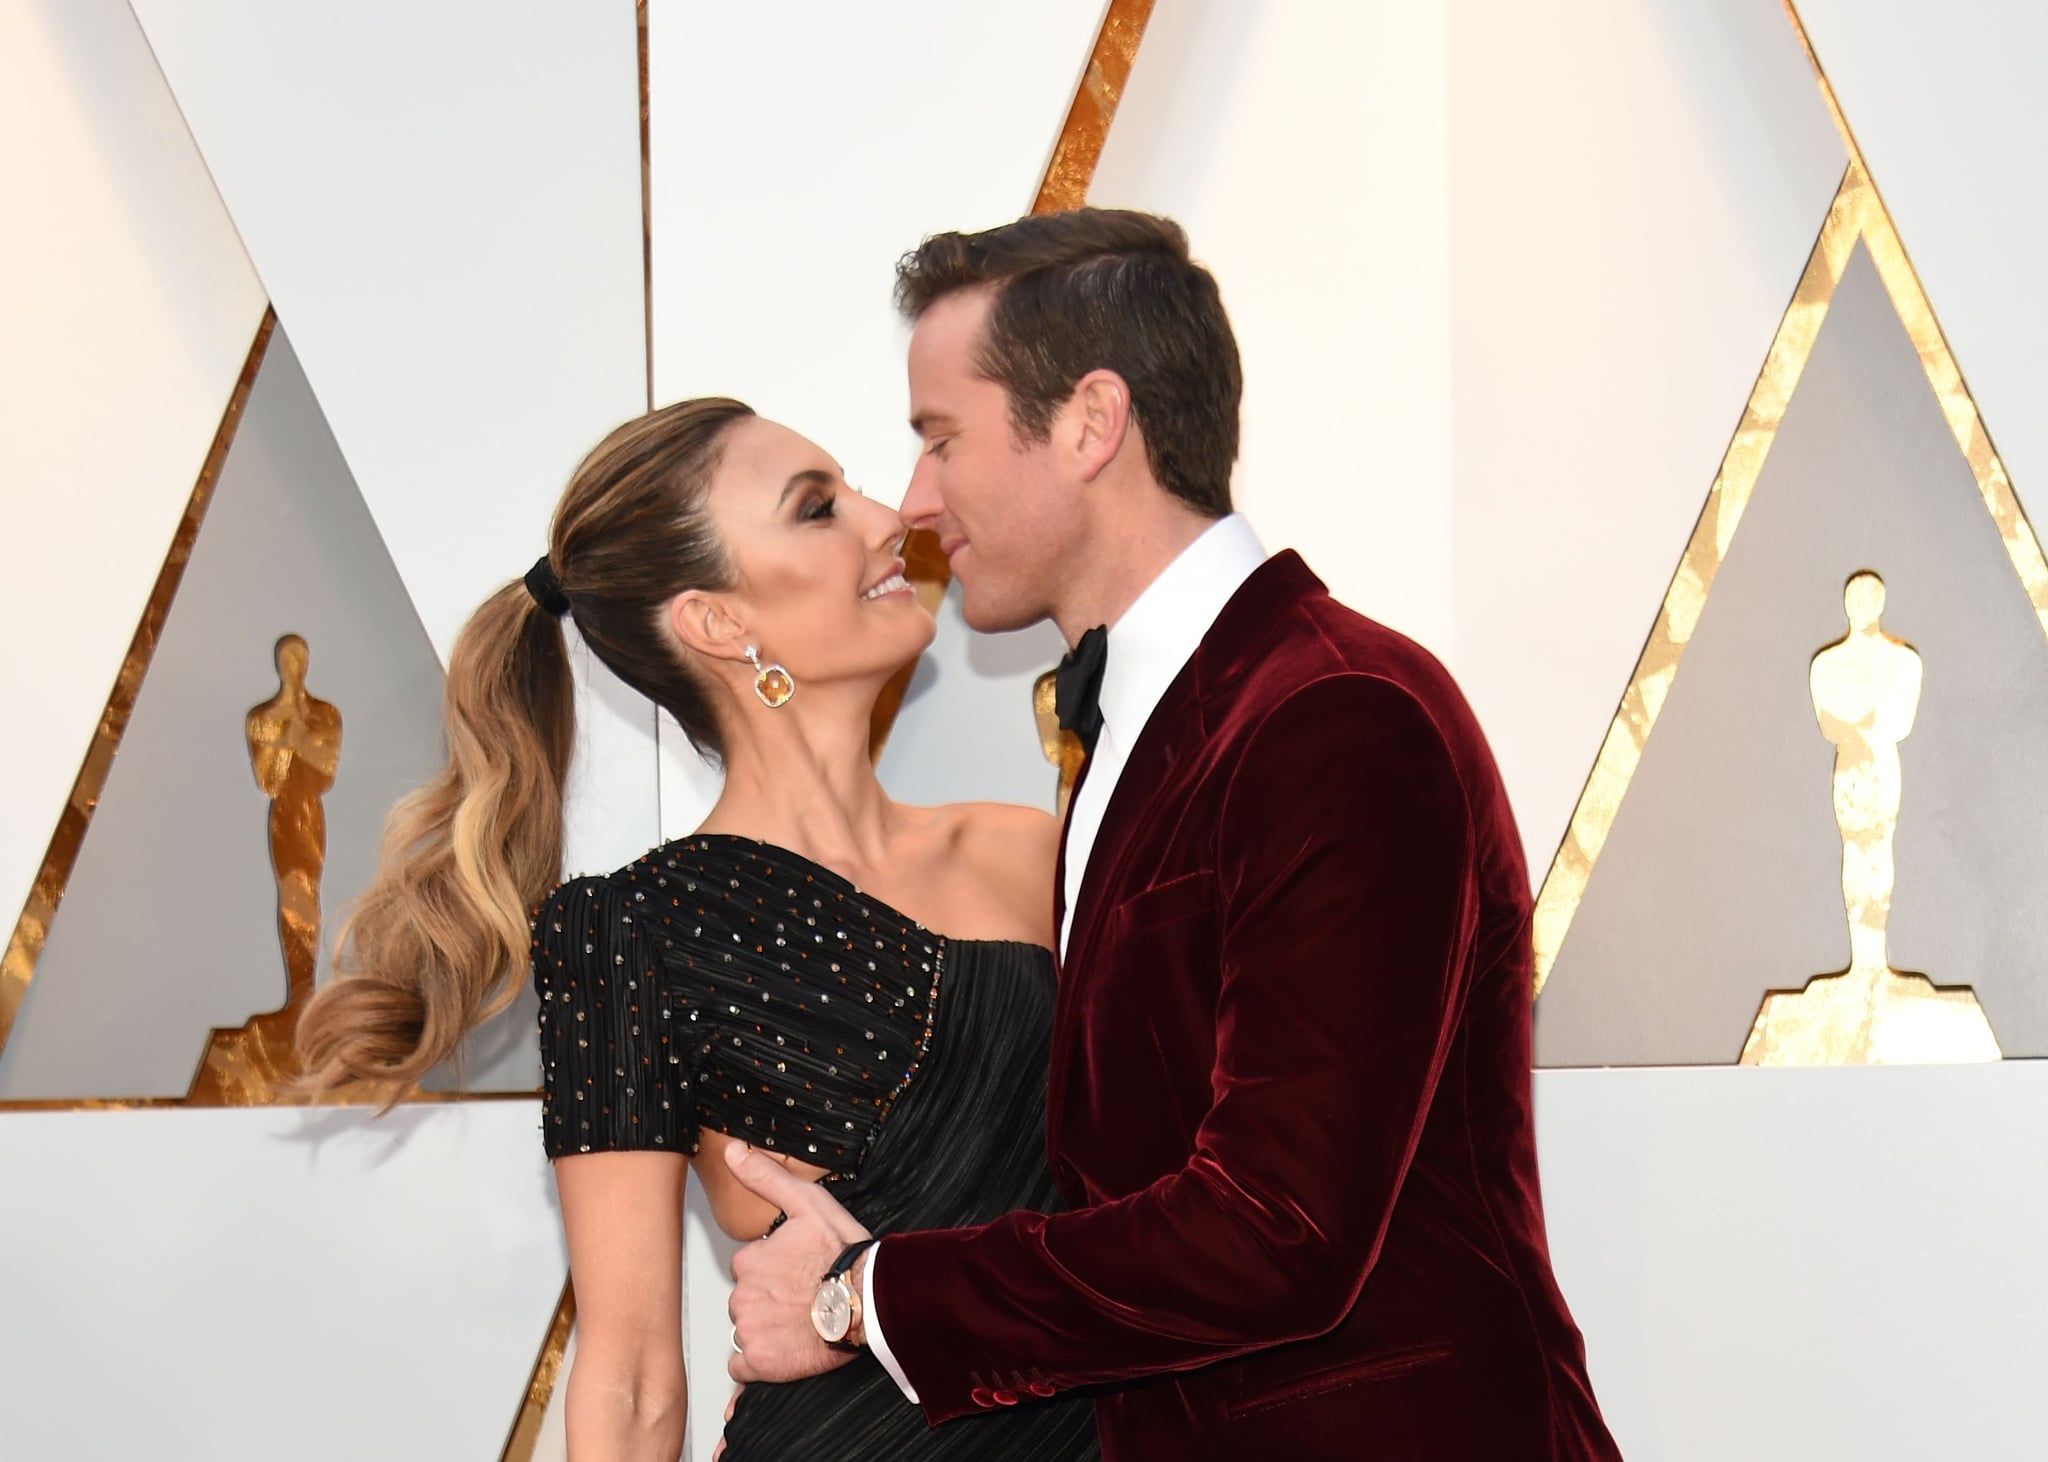 Elizabeth Chambers and Actor Armie Hammer arrive for the 90th Annual Academy Awards on March 4, 2018, in Hollywood, California.  / AFP PHOTO / VALERIE MACON        (Photo credit should read VALERIE MACON/AFP/Getty Images)